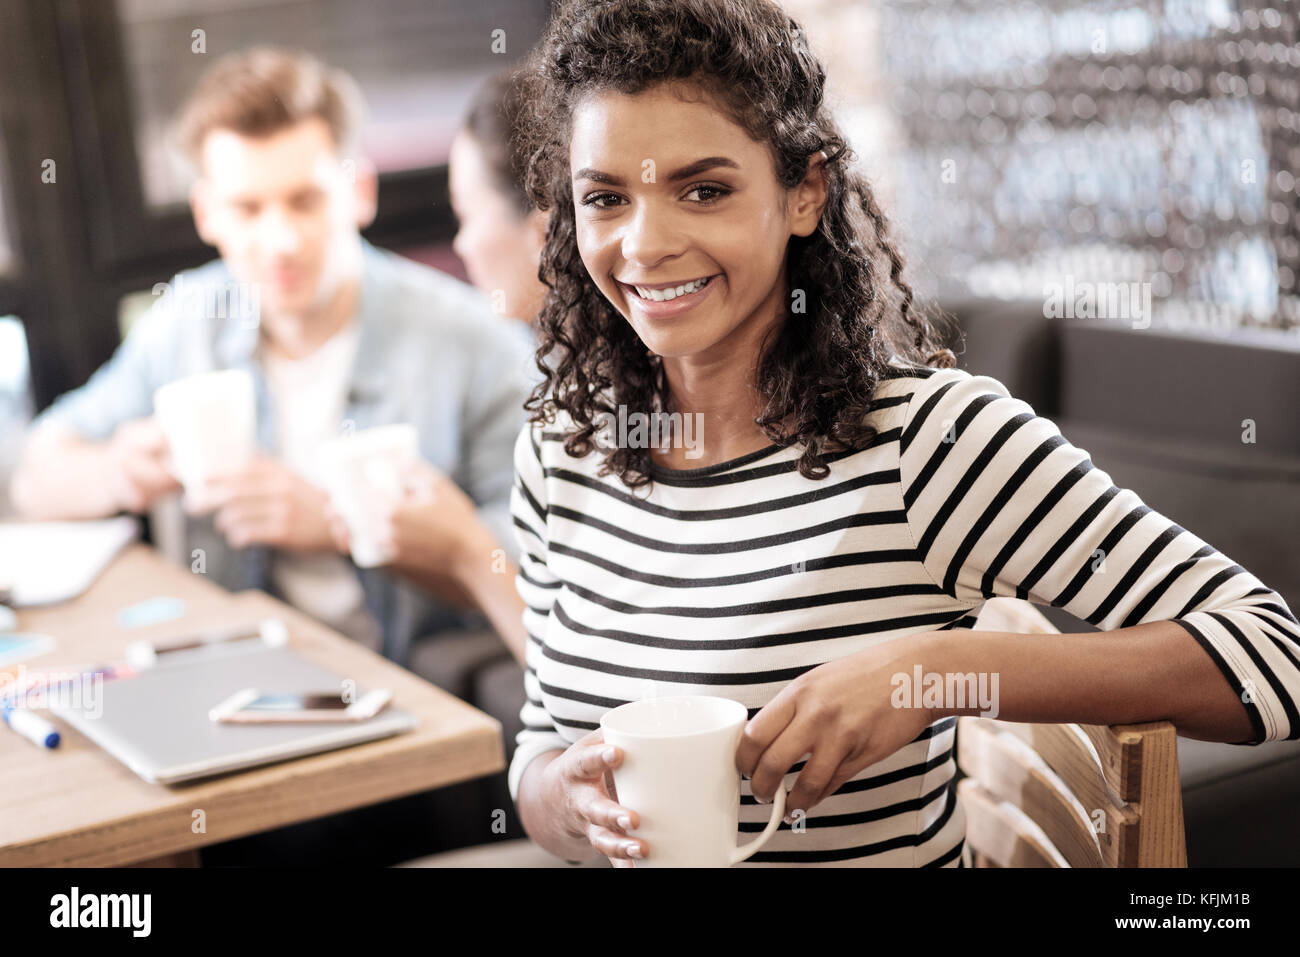 Glad curly-haired dark-eyed girl sitting at the table - Stock Image